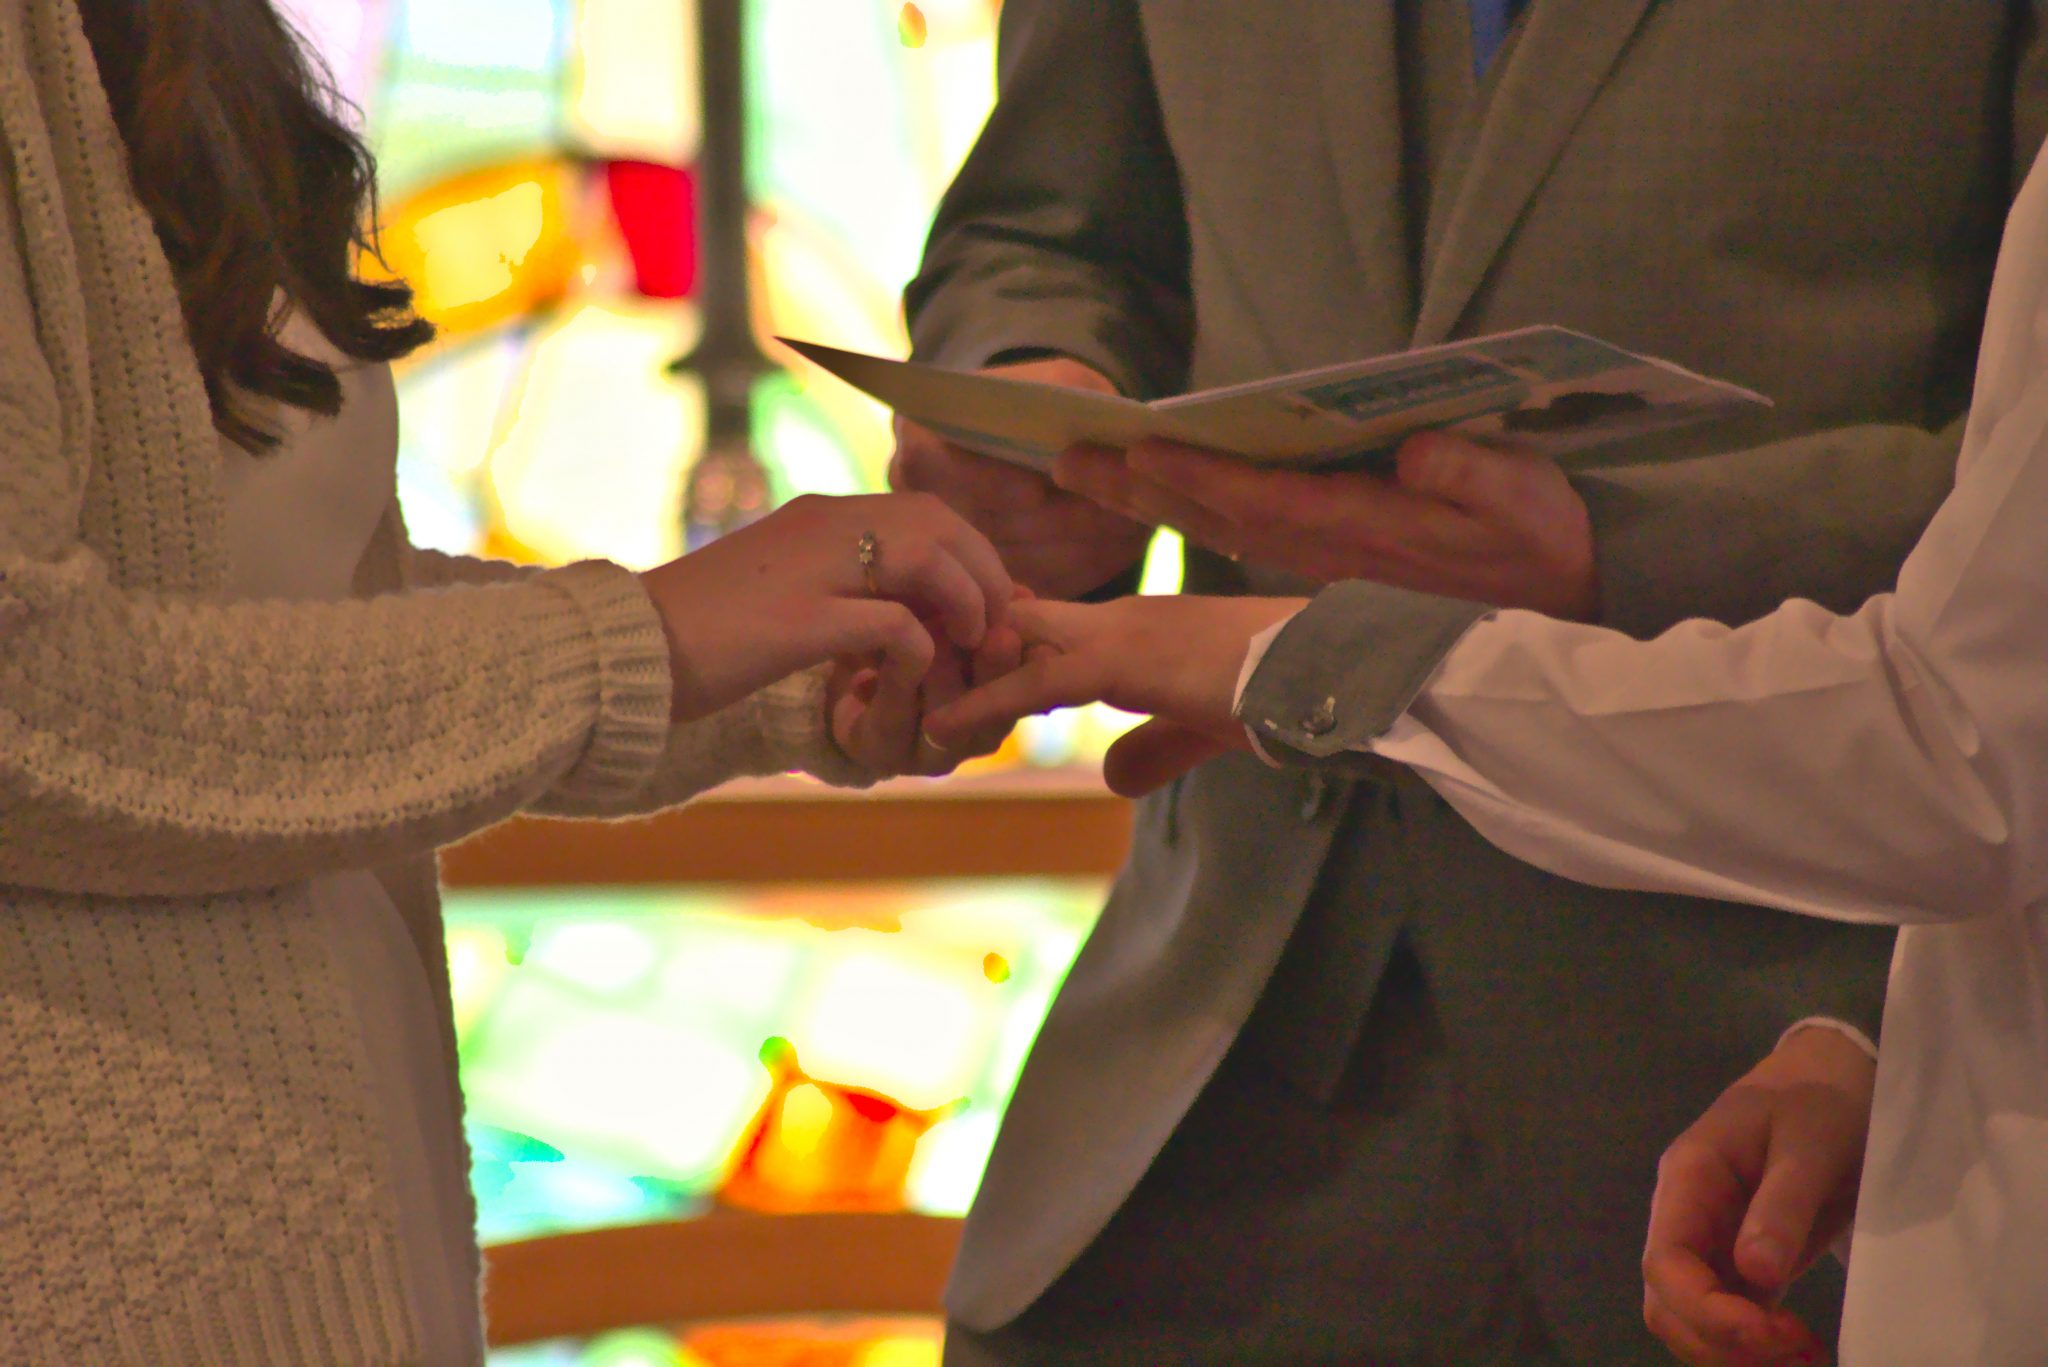 What a Messy Church wedding could look like